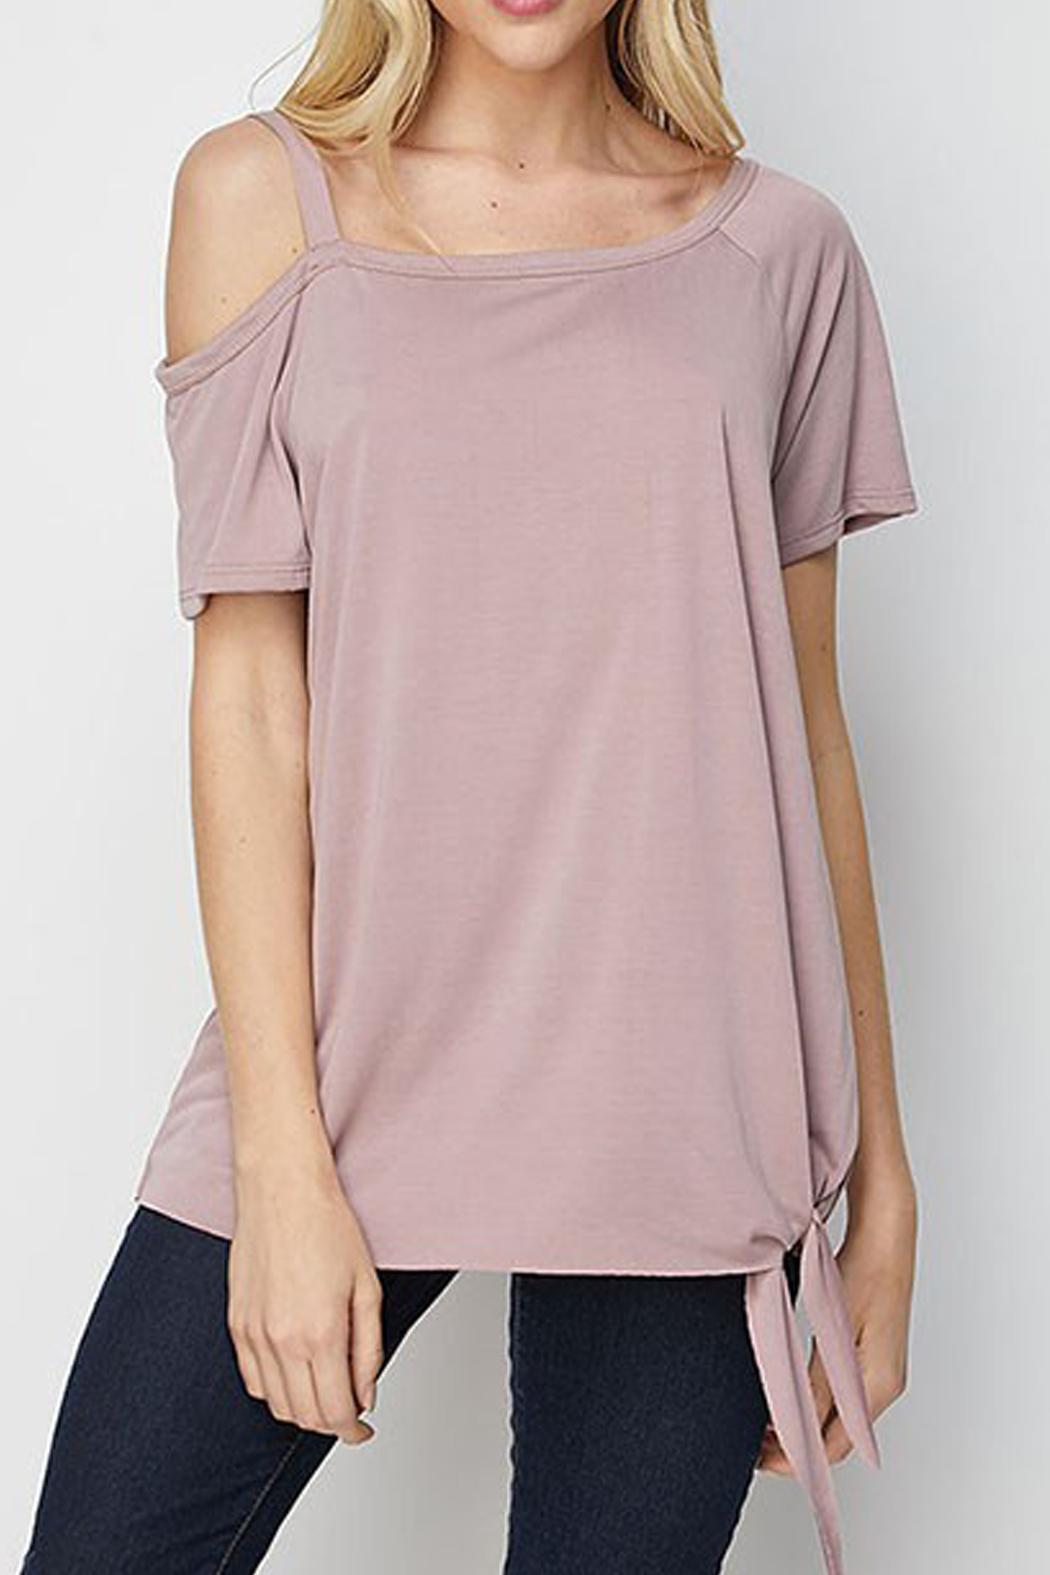 CY Fashion One Shoulder Top - Main Image